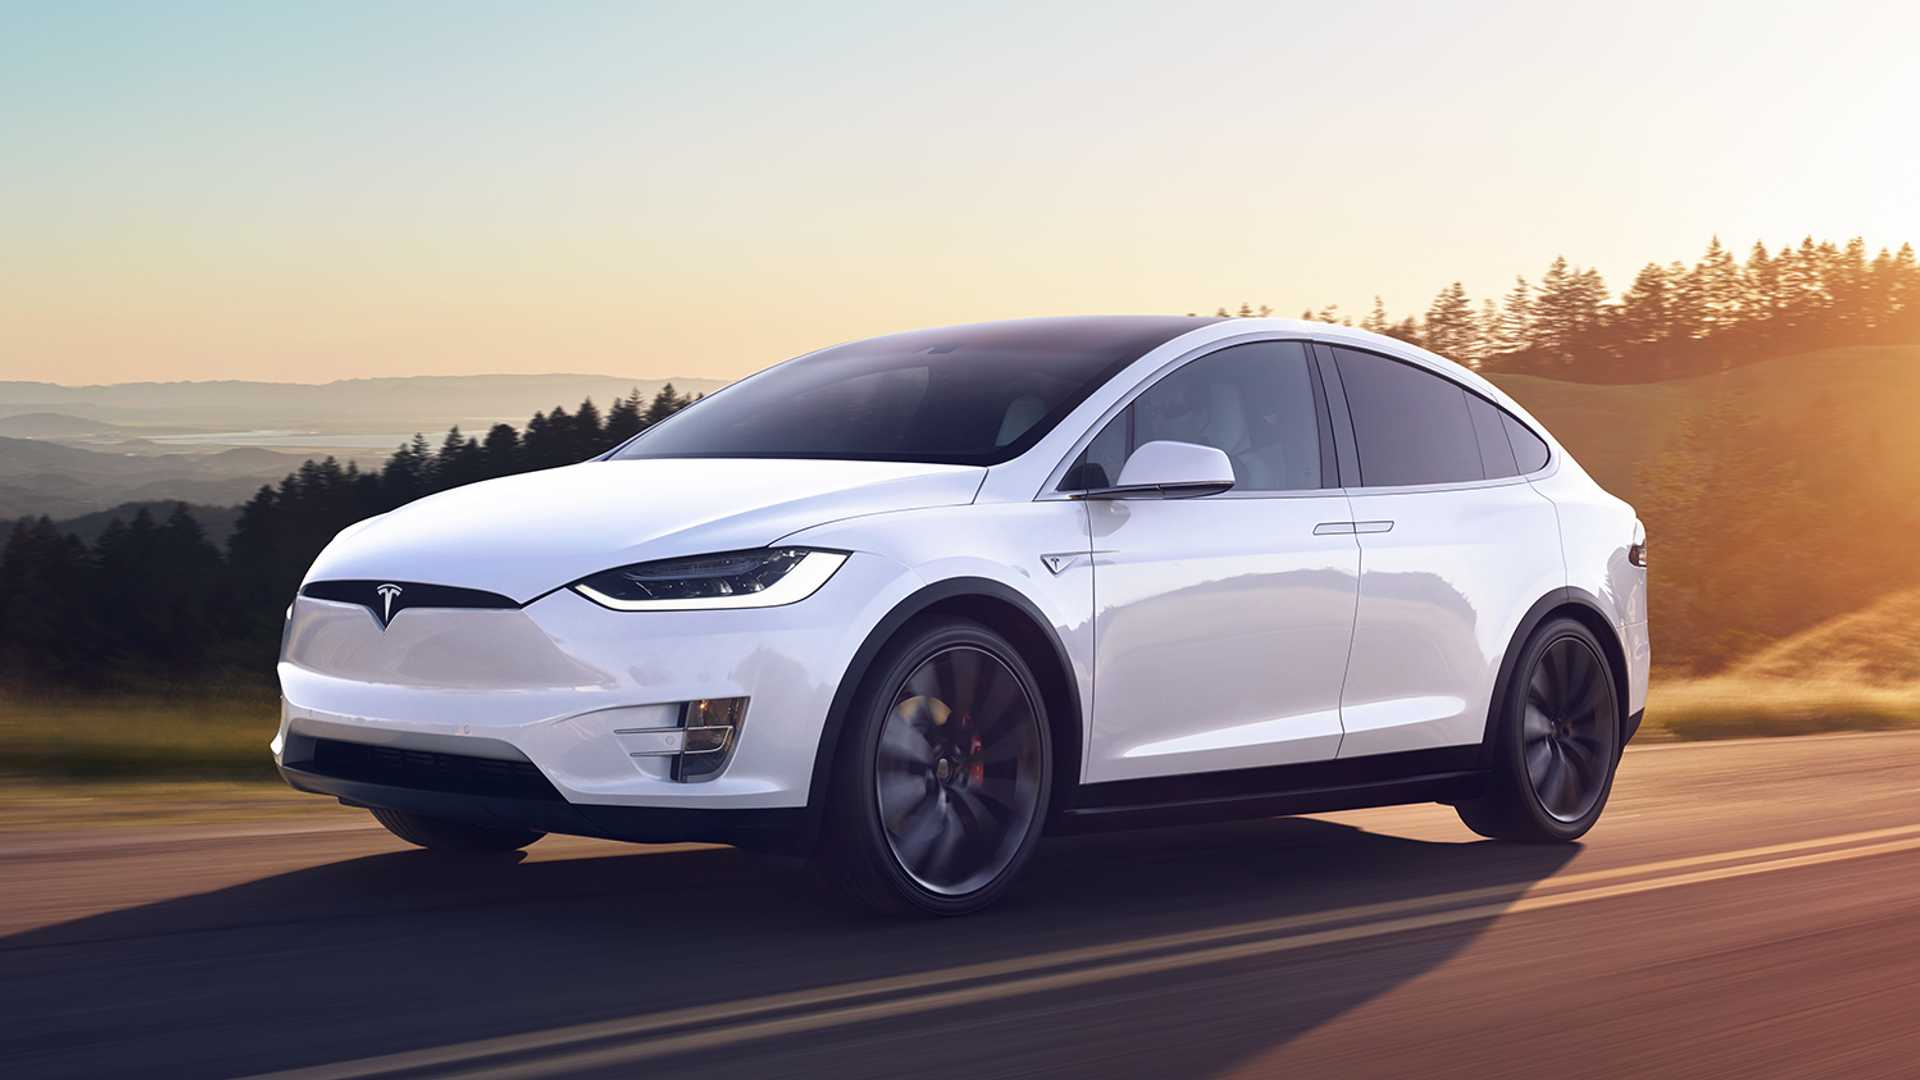 Enter To Win A Tesla Model X With $20,000 In The Trunk